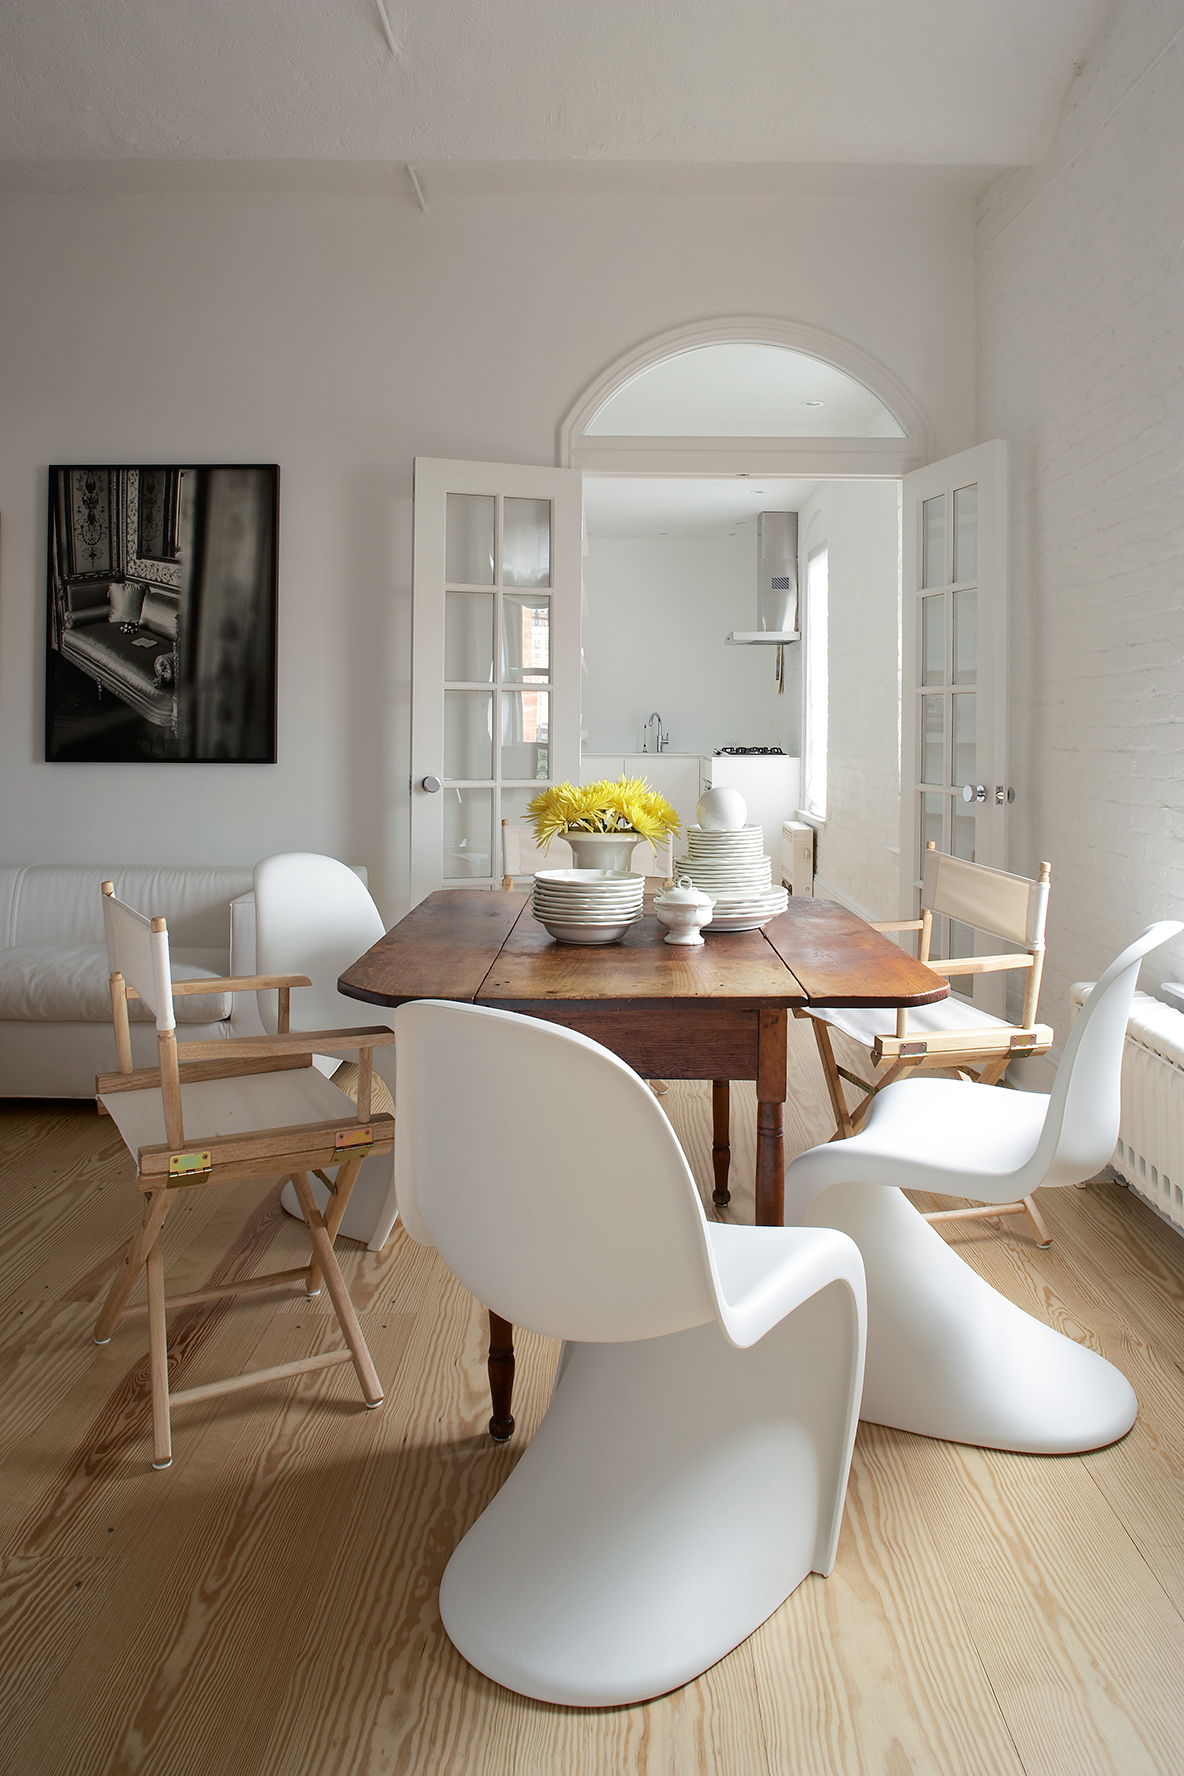 magdalena-keck-greenwich-village-pied-a-terre-dining-area